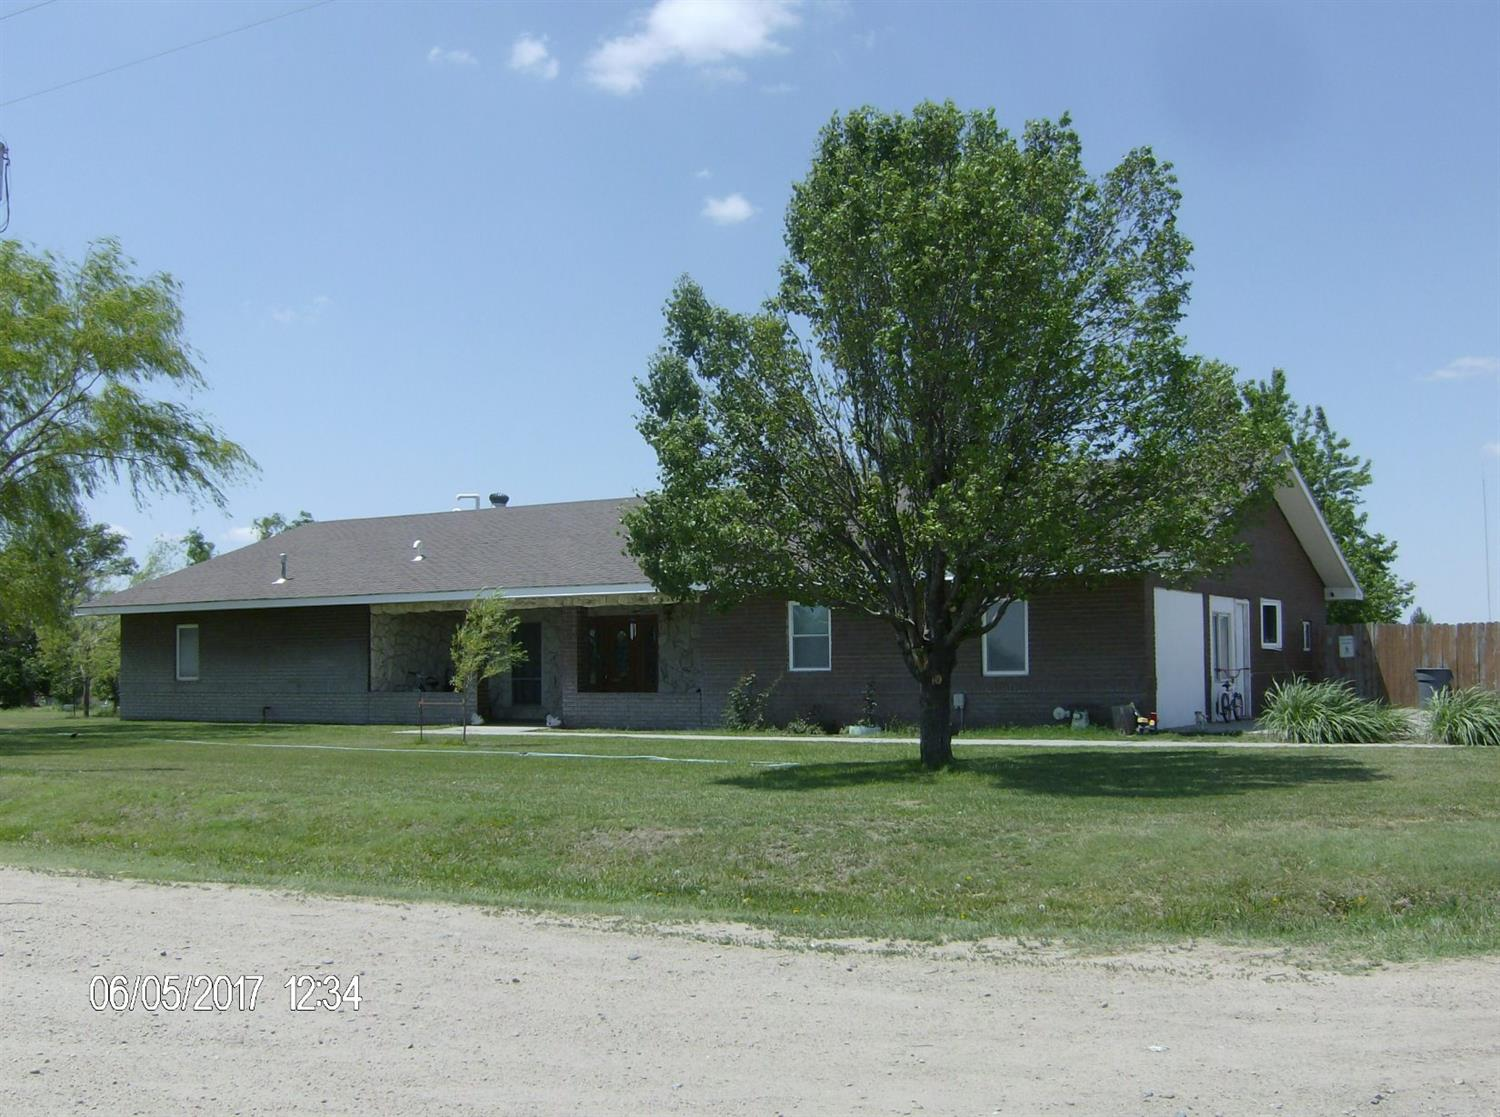 2565 N Sherlock Road, Garden City, KS 67846